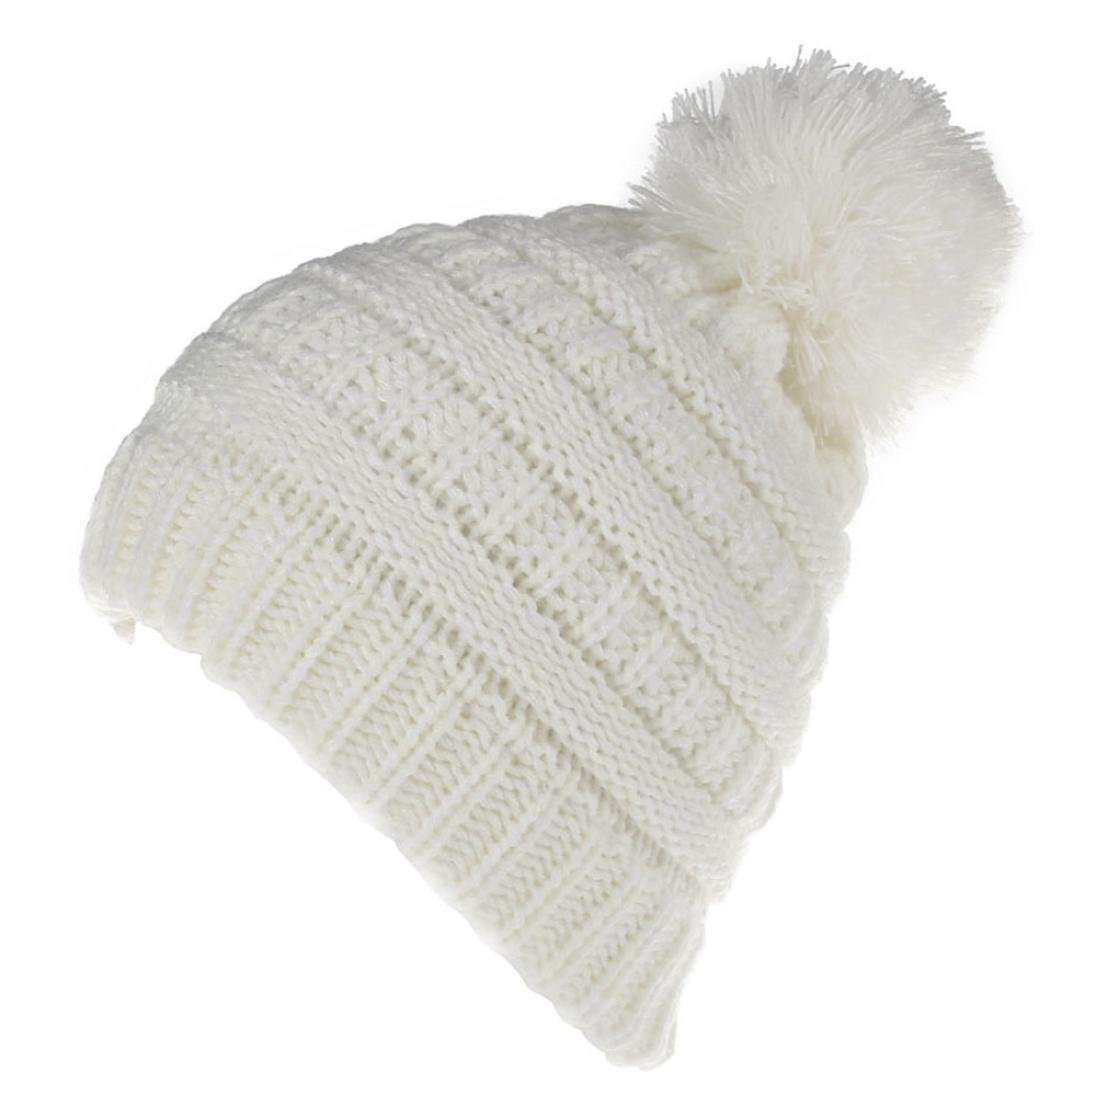 Zolimx Newborn Hats Cute Keep Warm Winter Knitted Hemming Hat BH-02